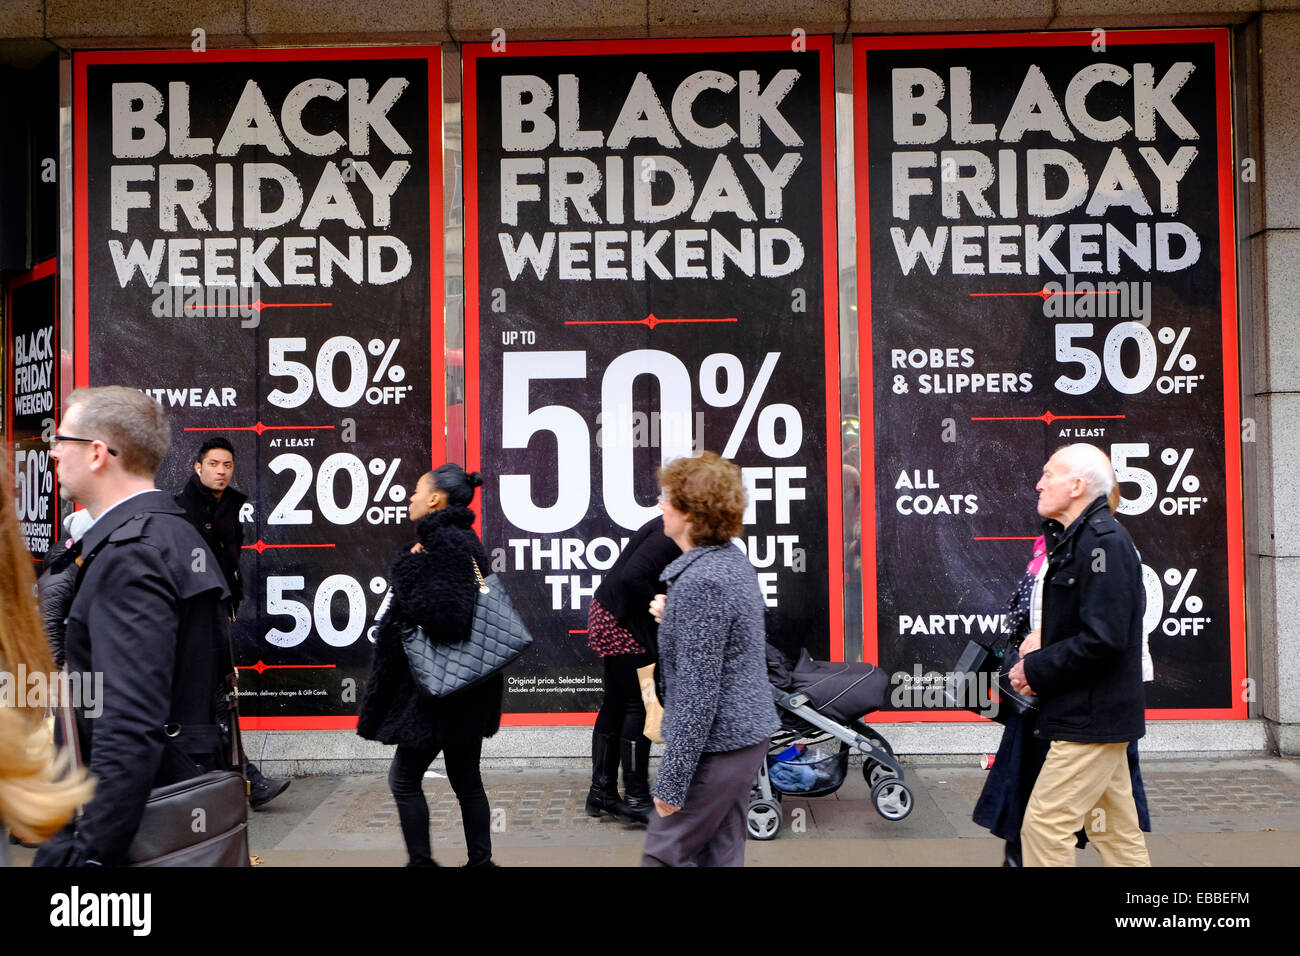 Black Friday Signs High Resolution Stock Photography And Images Alamy